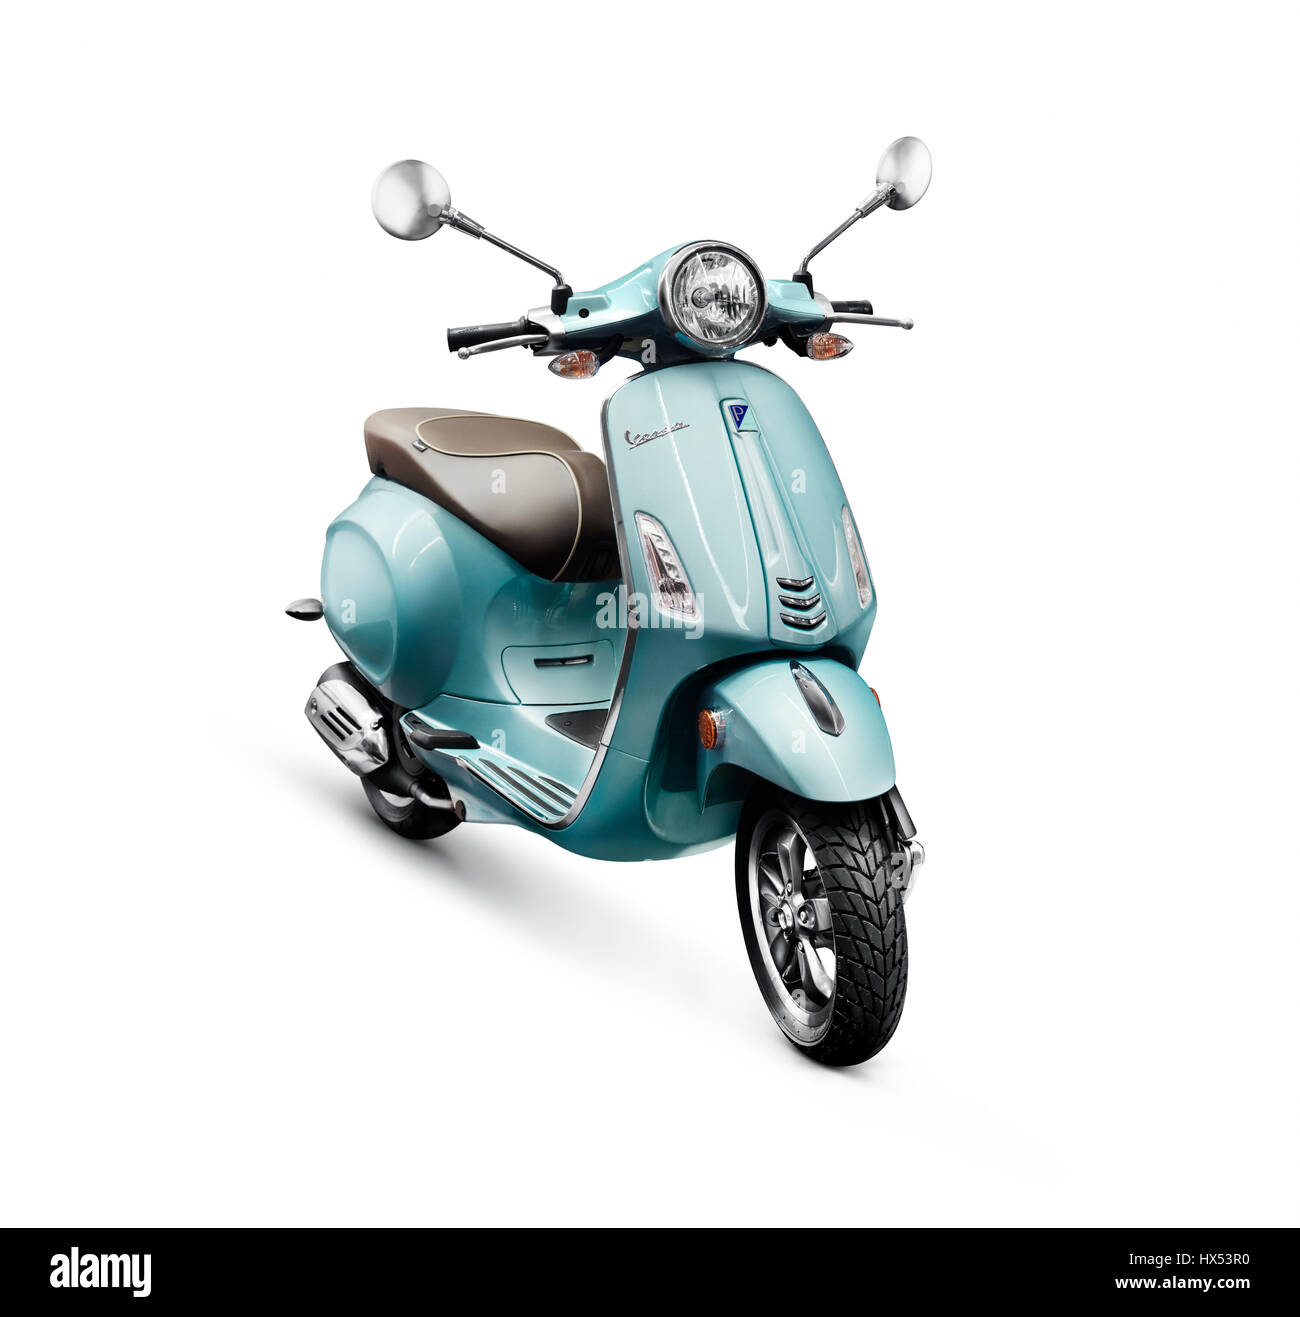 blue 2017 motor scooter vespa manufacturedpiaggio isolated on